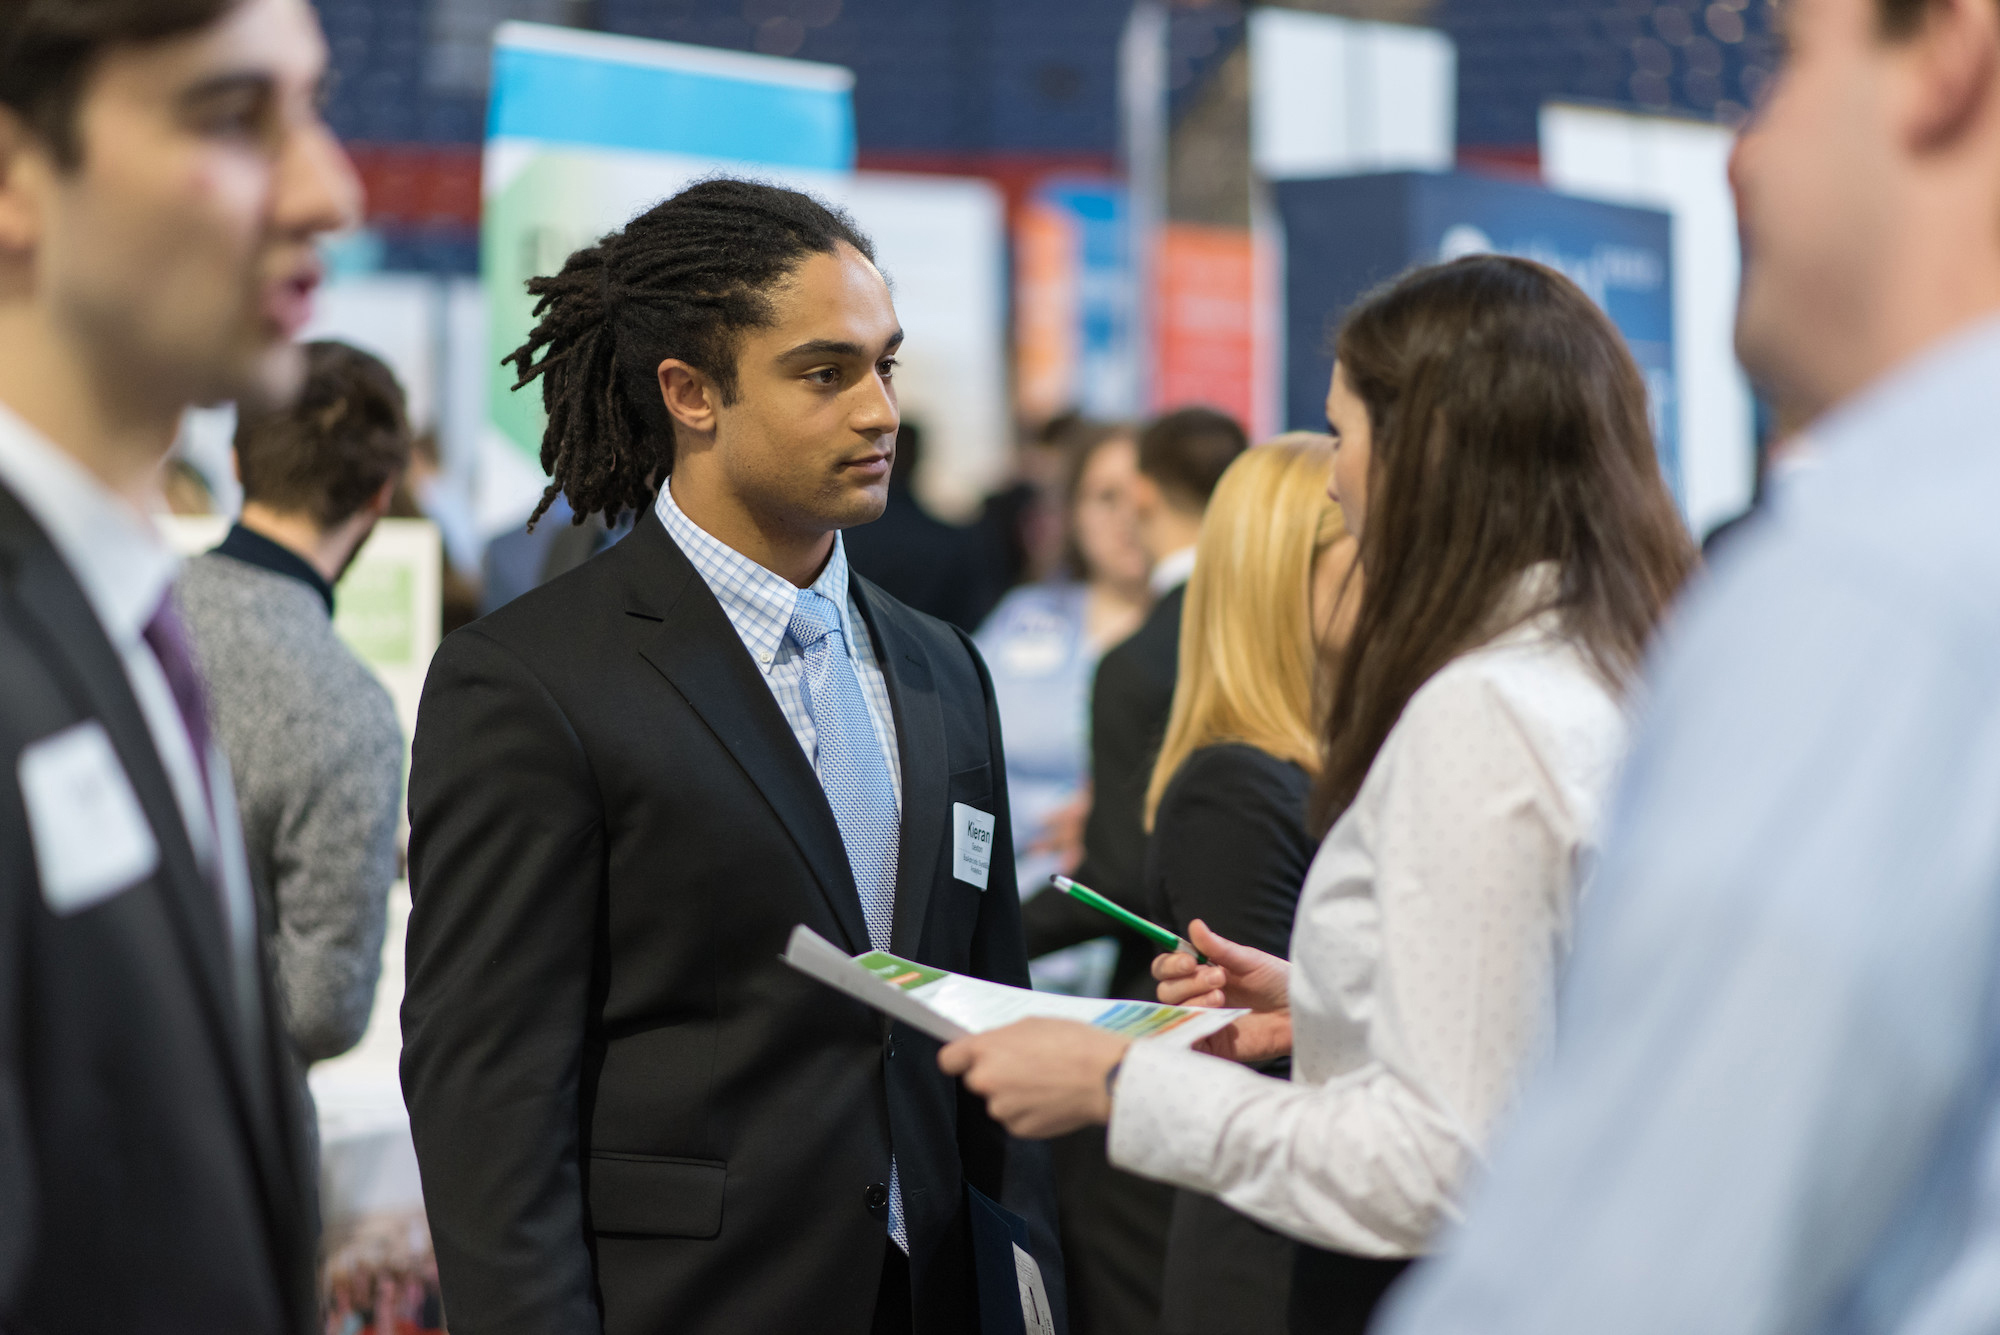 A career and internship fair at the University of New Hampshire